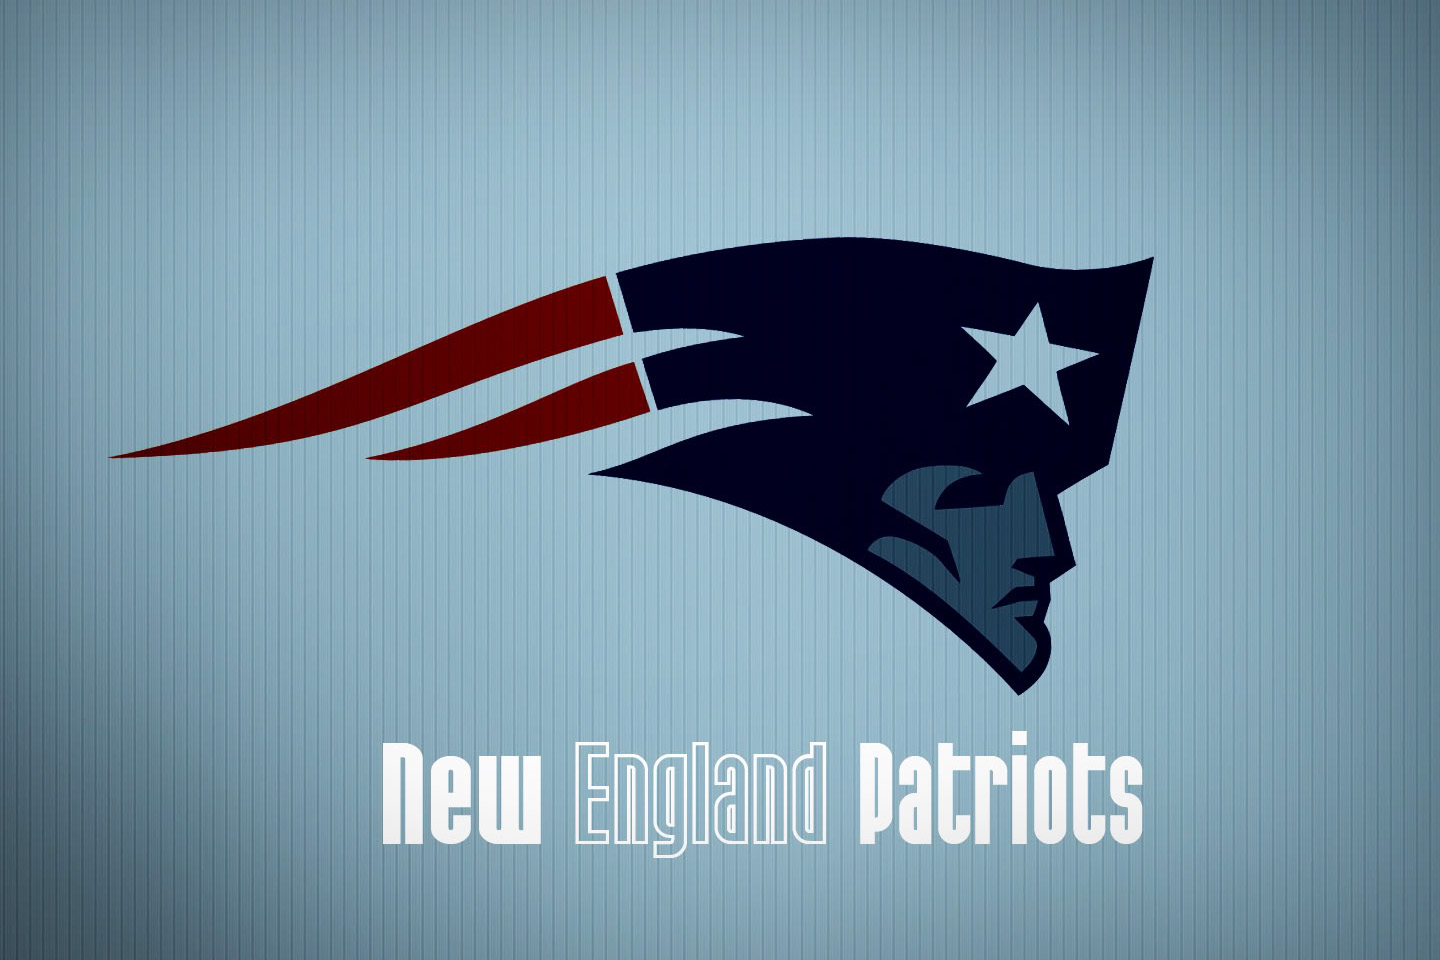 new england patriots wikipedia rosterapps